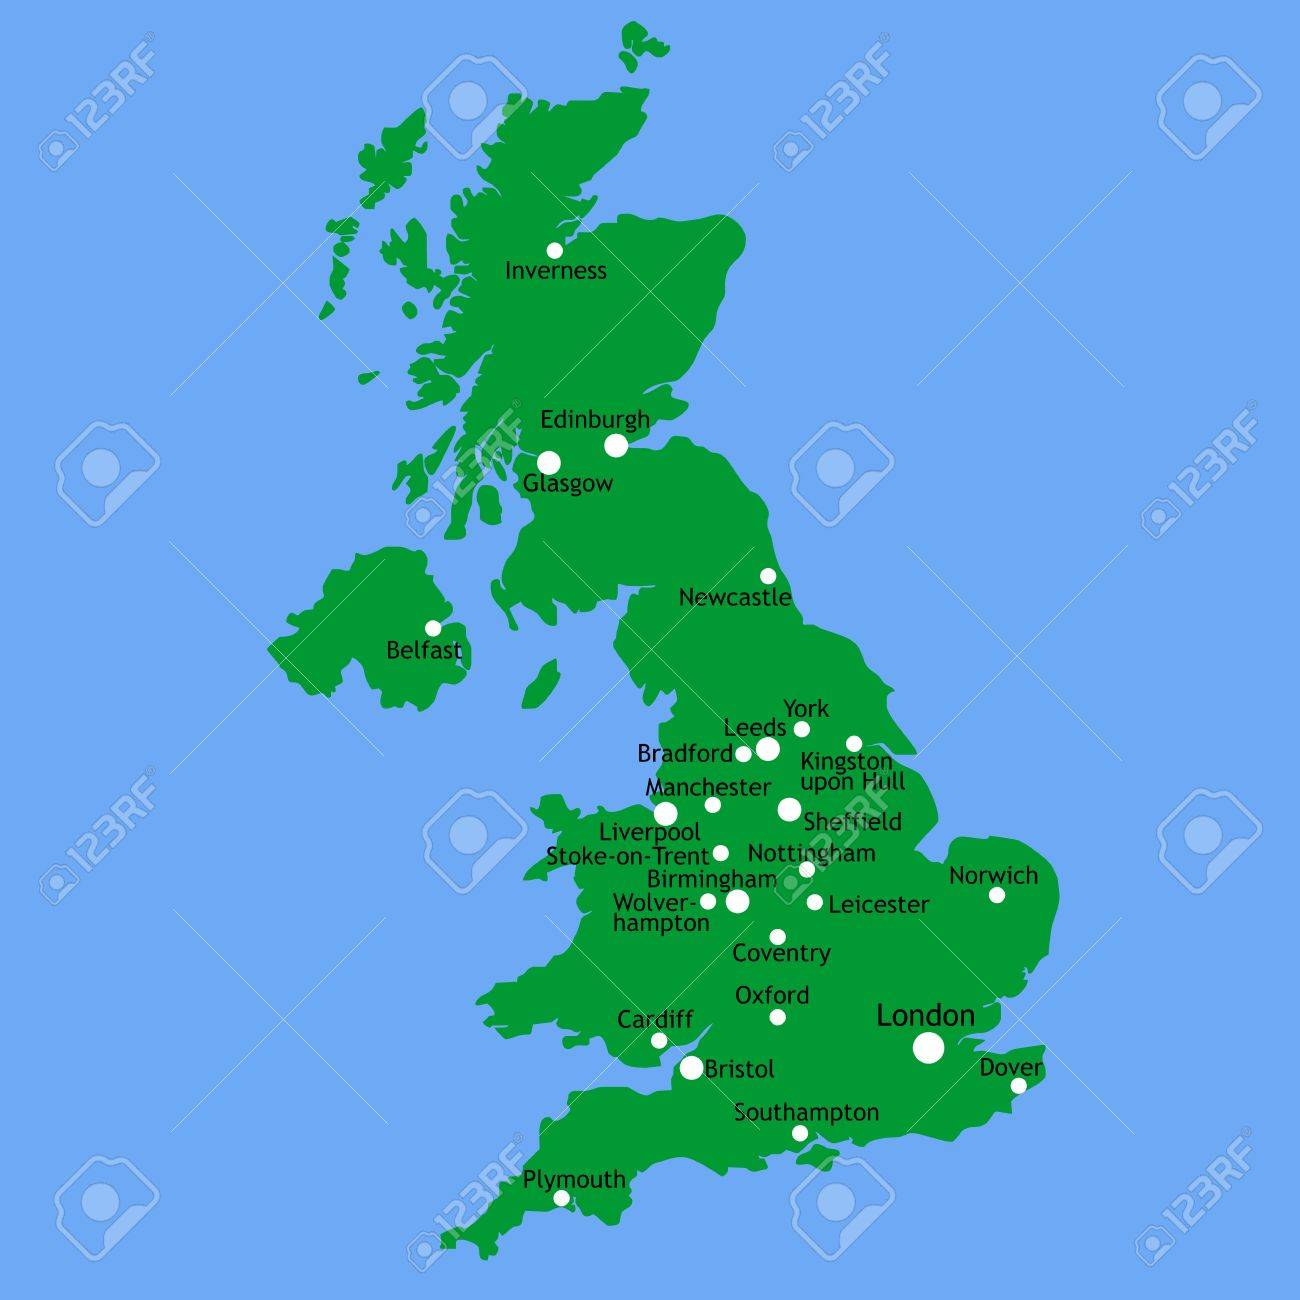 Map Of Uk And Cities.Uk Map With Main Towns And Cities